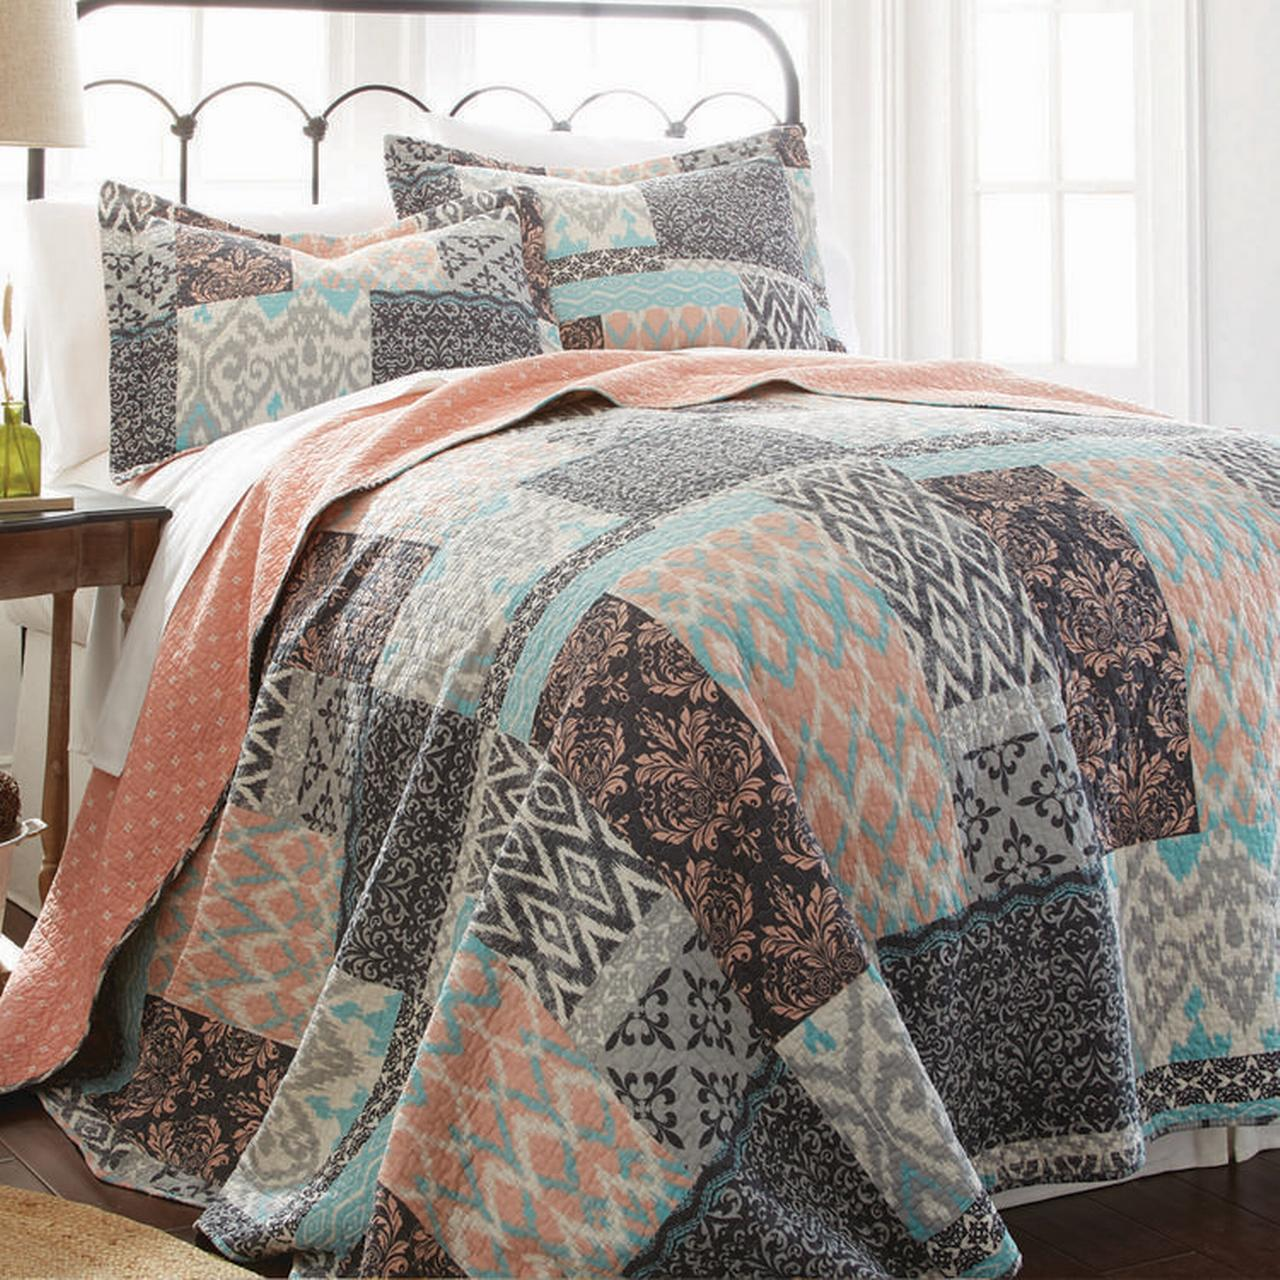 100% Cotton 3 Piece Printed Reversible Quilt Set Sylvia Full Queen by Amrapur Overseas, Inc.